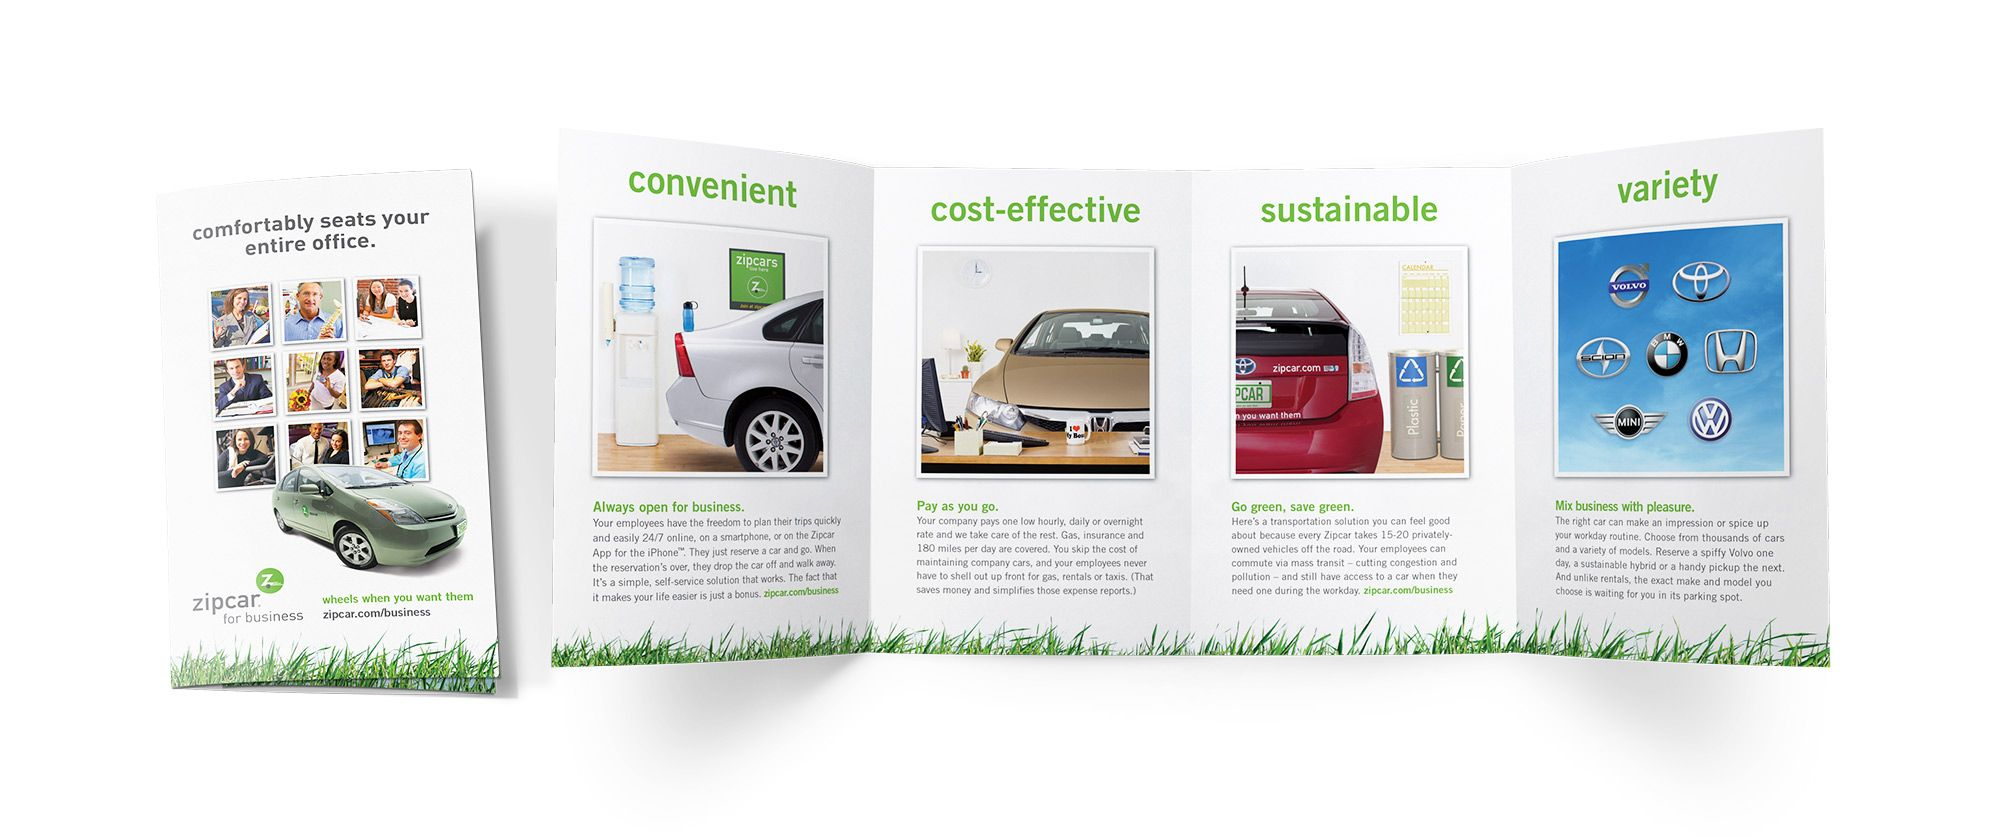 Zipcar For Business Graphic Design By Katie Bielawski Fantabulous Design Com Fantabulous Graphic Design Creative